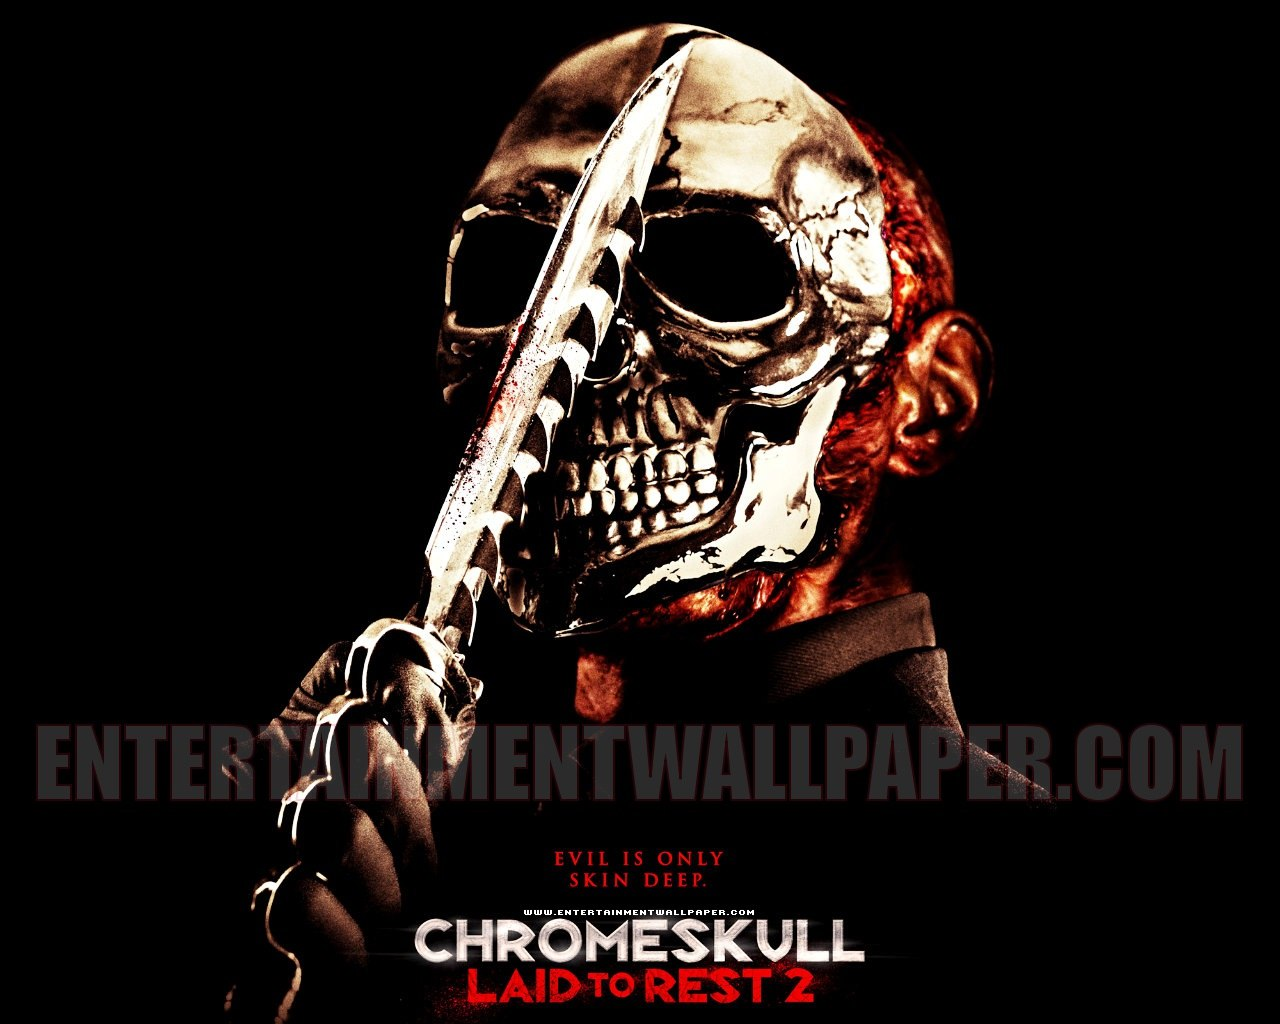 Horror movies chrome skull laid to rest 2